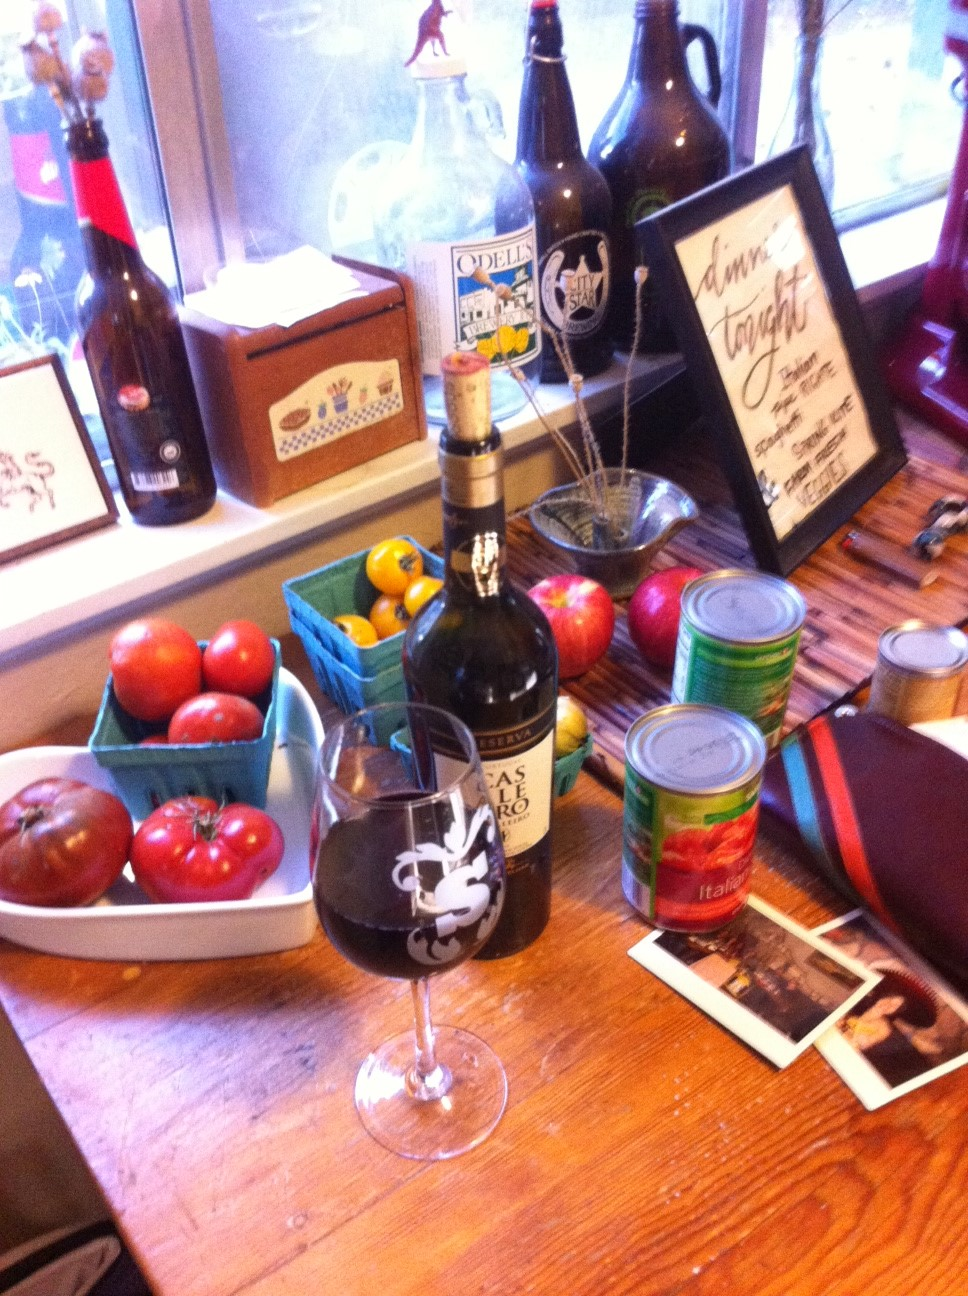 delicious wine, food, friends, fall evening light, old kitchen tables from generations past